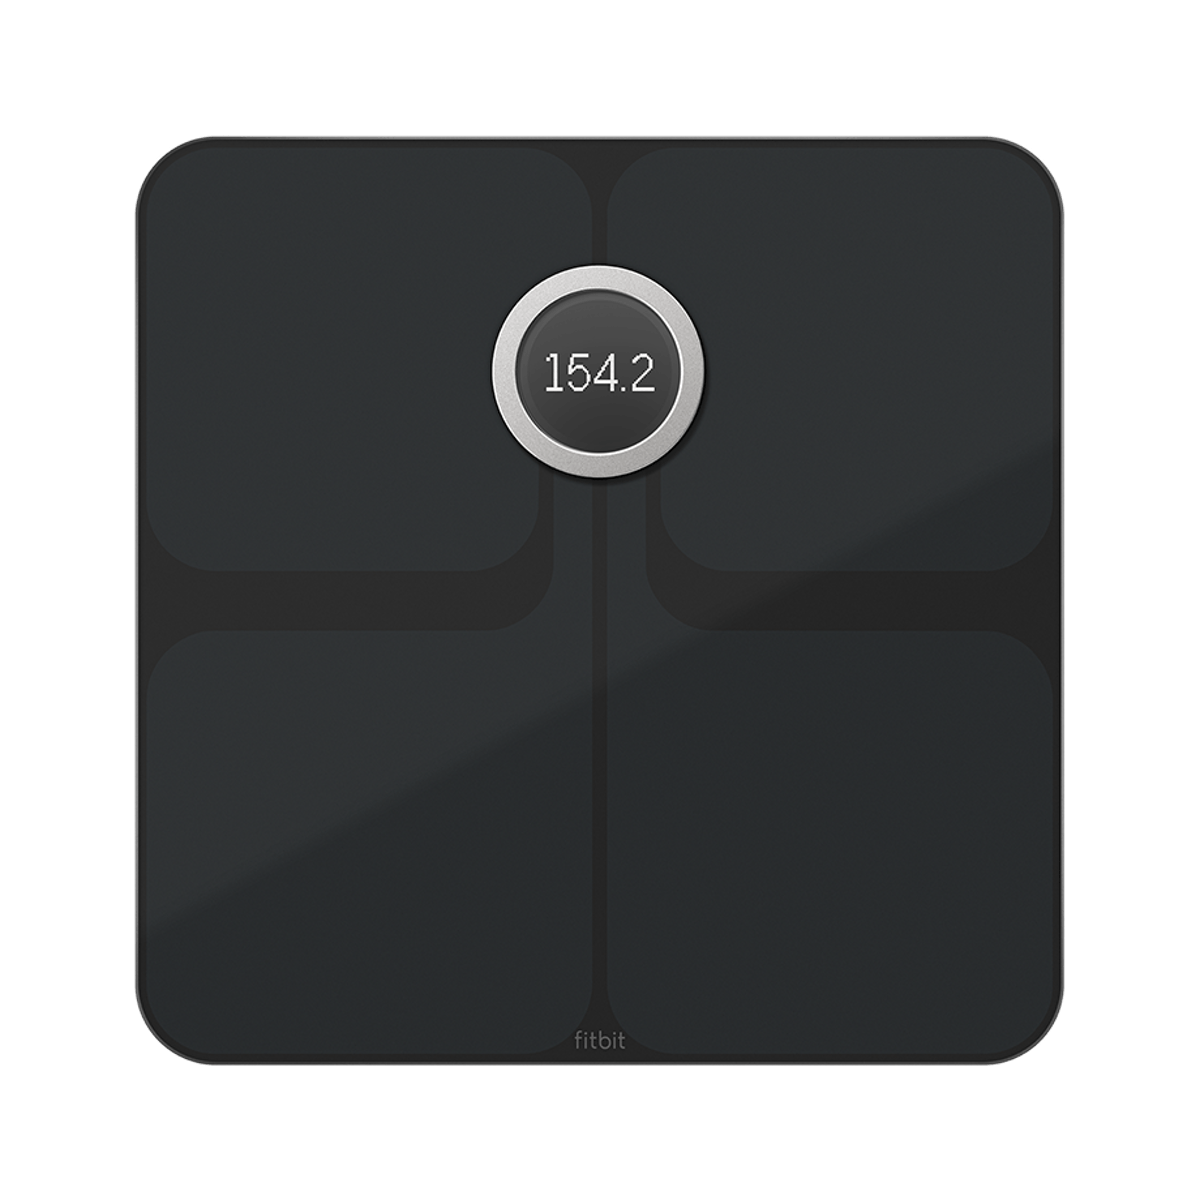 4 Smart Scales Every Home Should Have